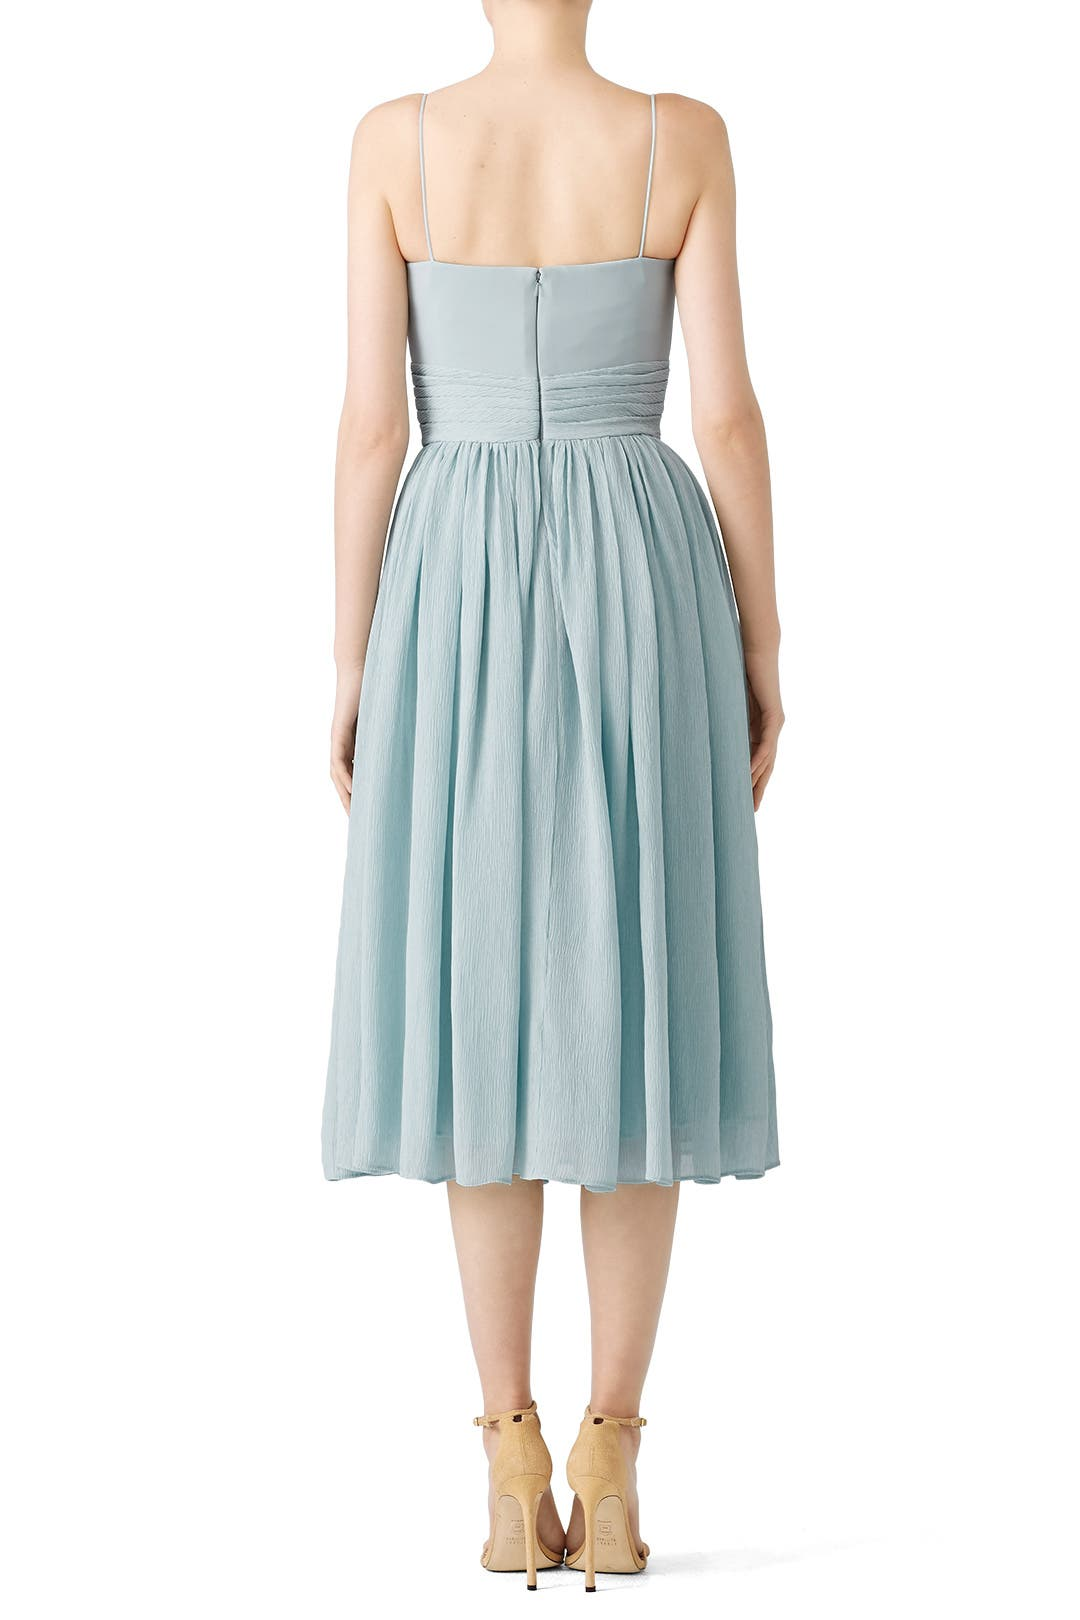 Blue Knotted Midi Dress by ADEAM for $40 | Rent the Runway